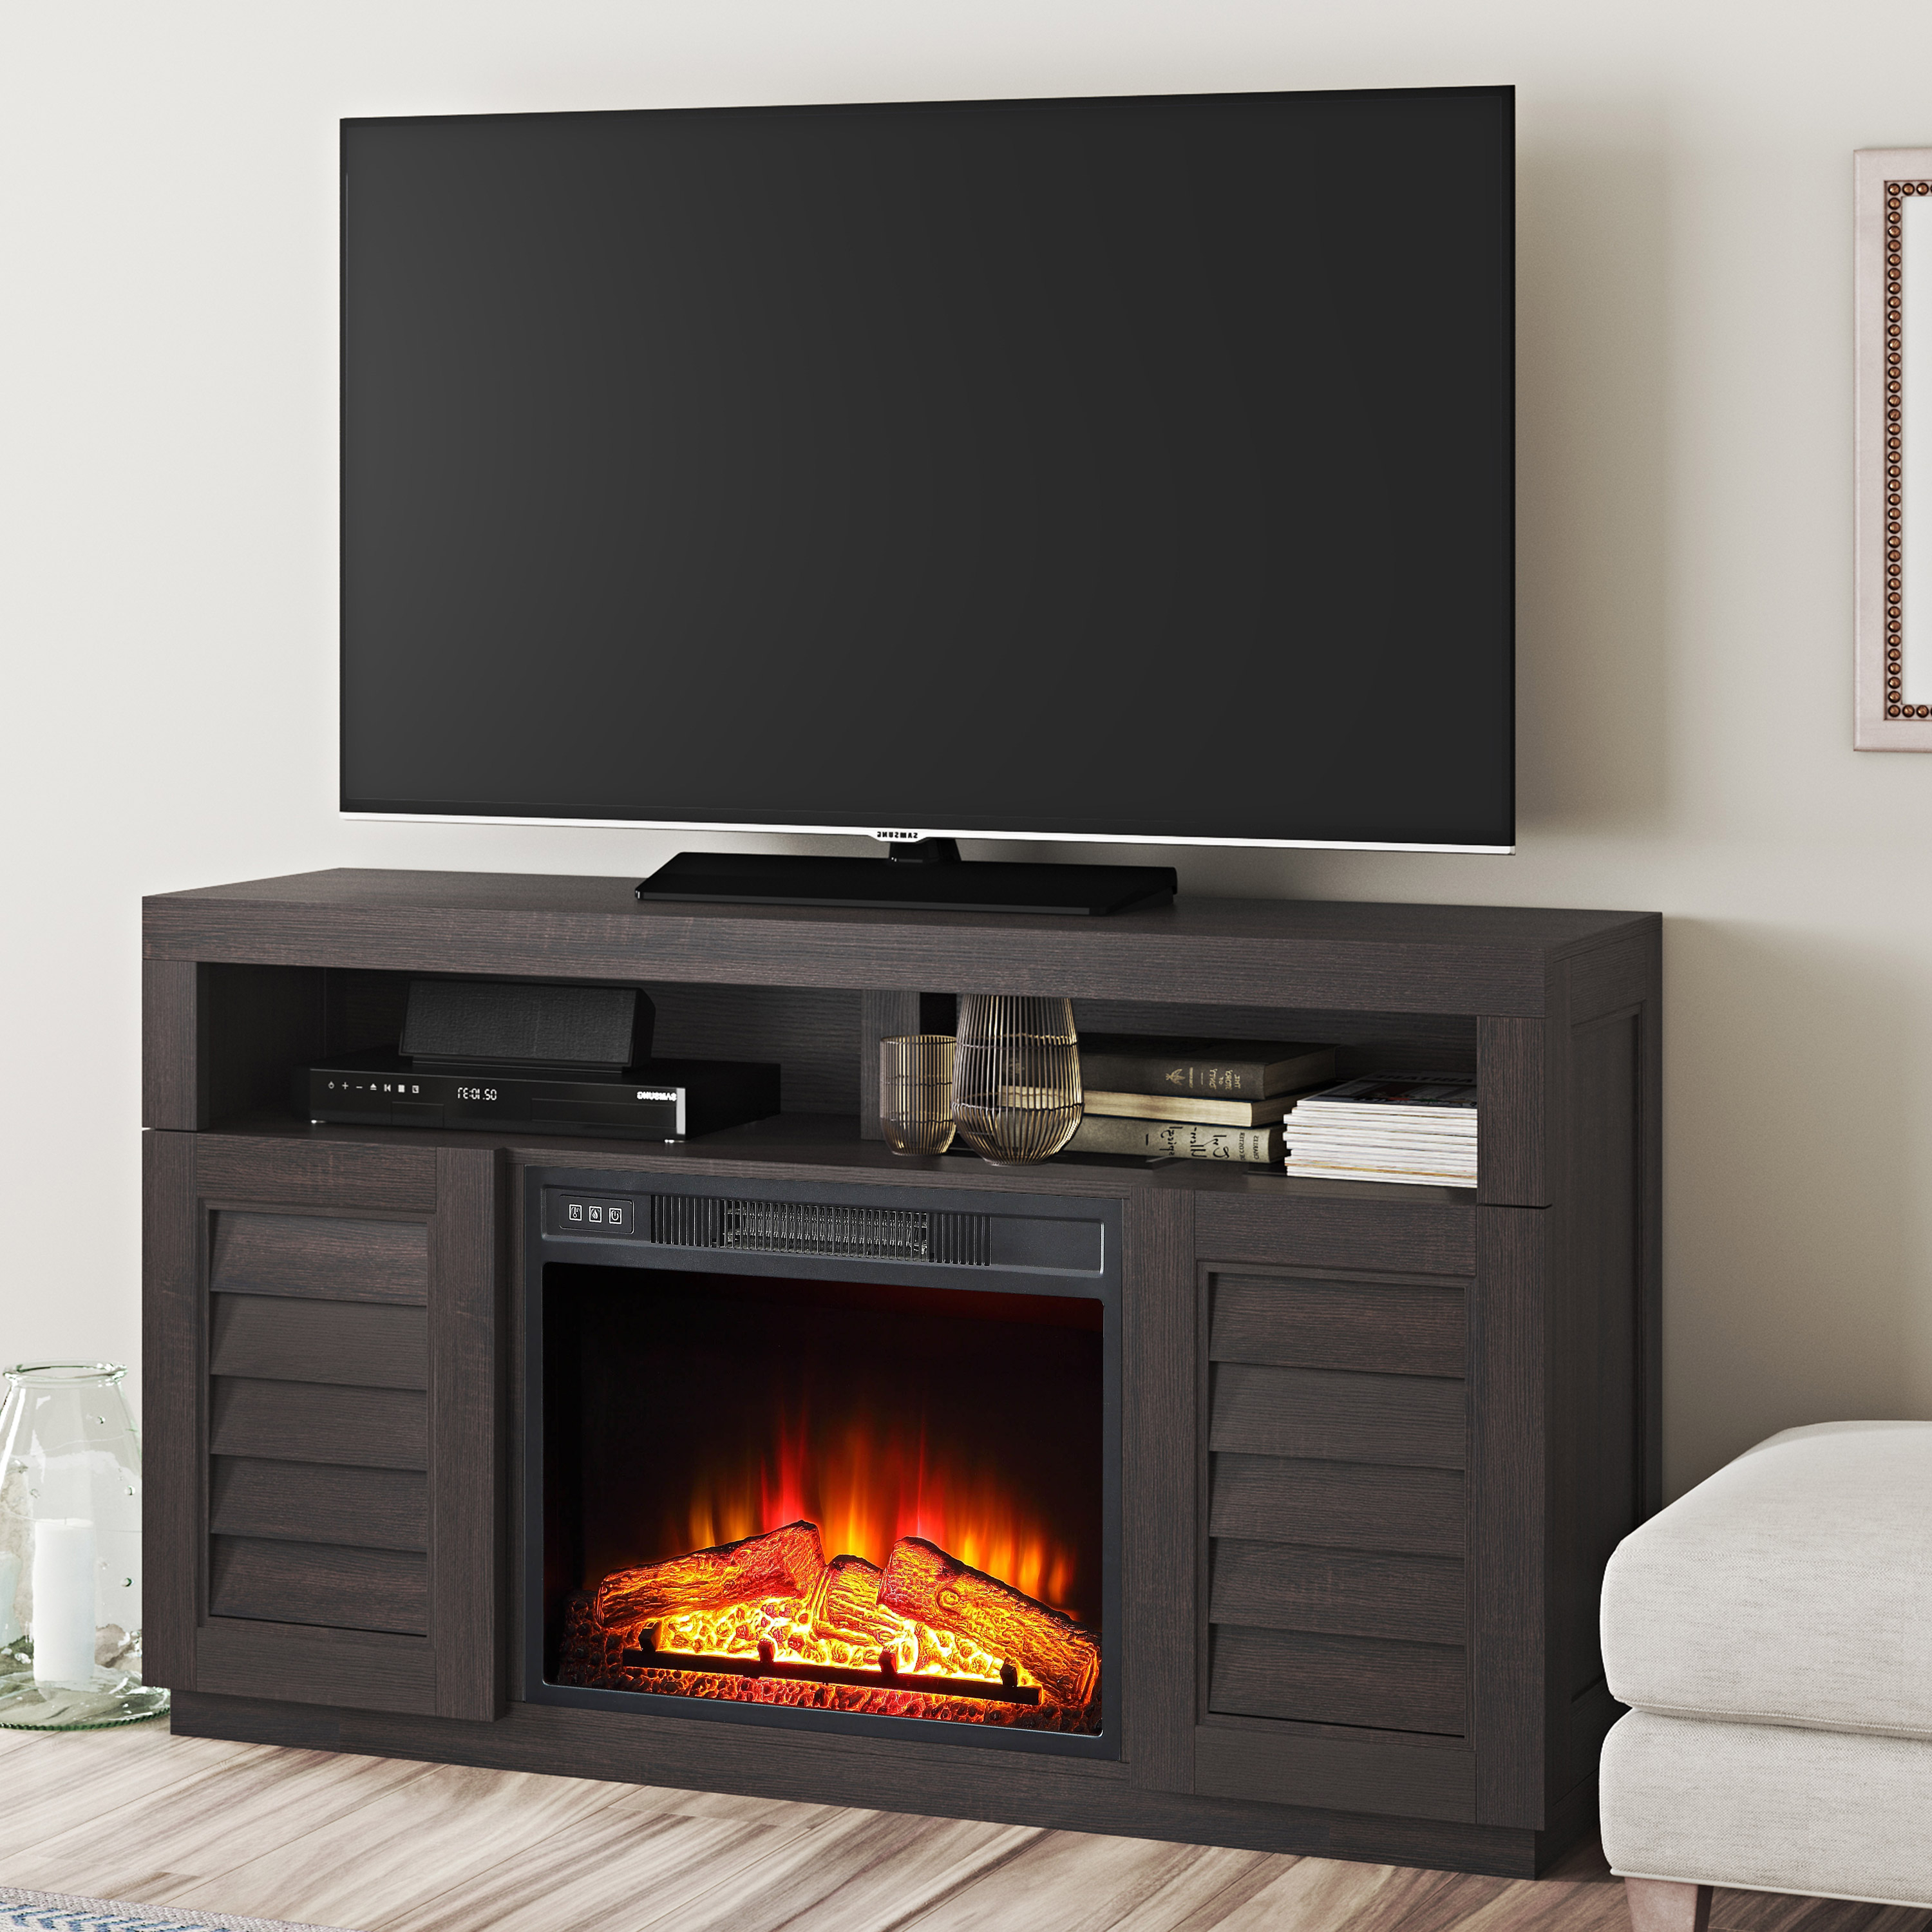 Tv Stands & Entertainment Centers – Walmart For Favorite 24 Inch Tall Tv Stands (View 16 of 20)